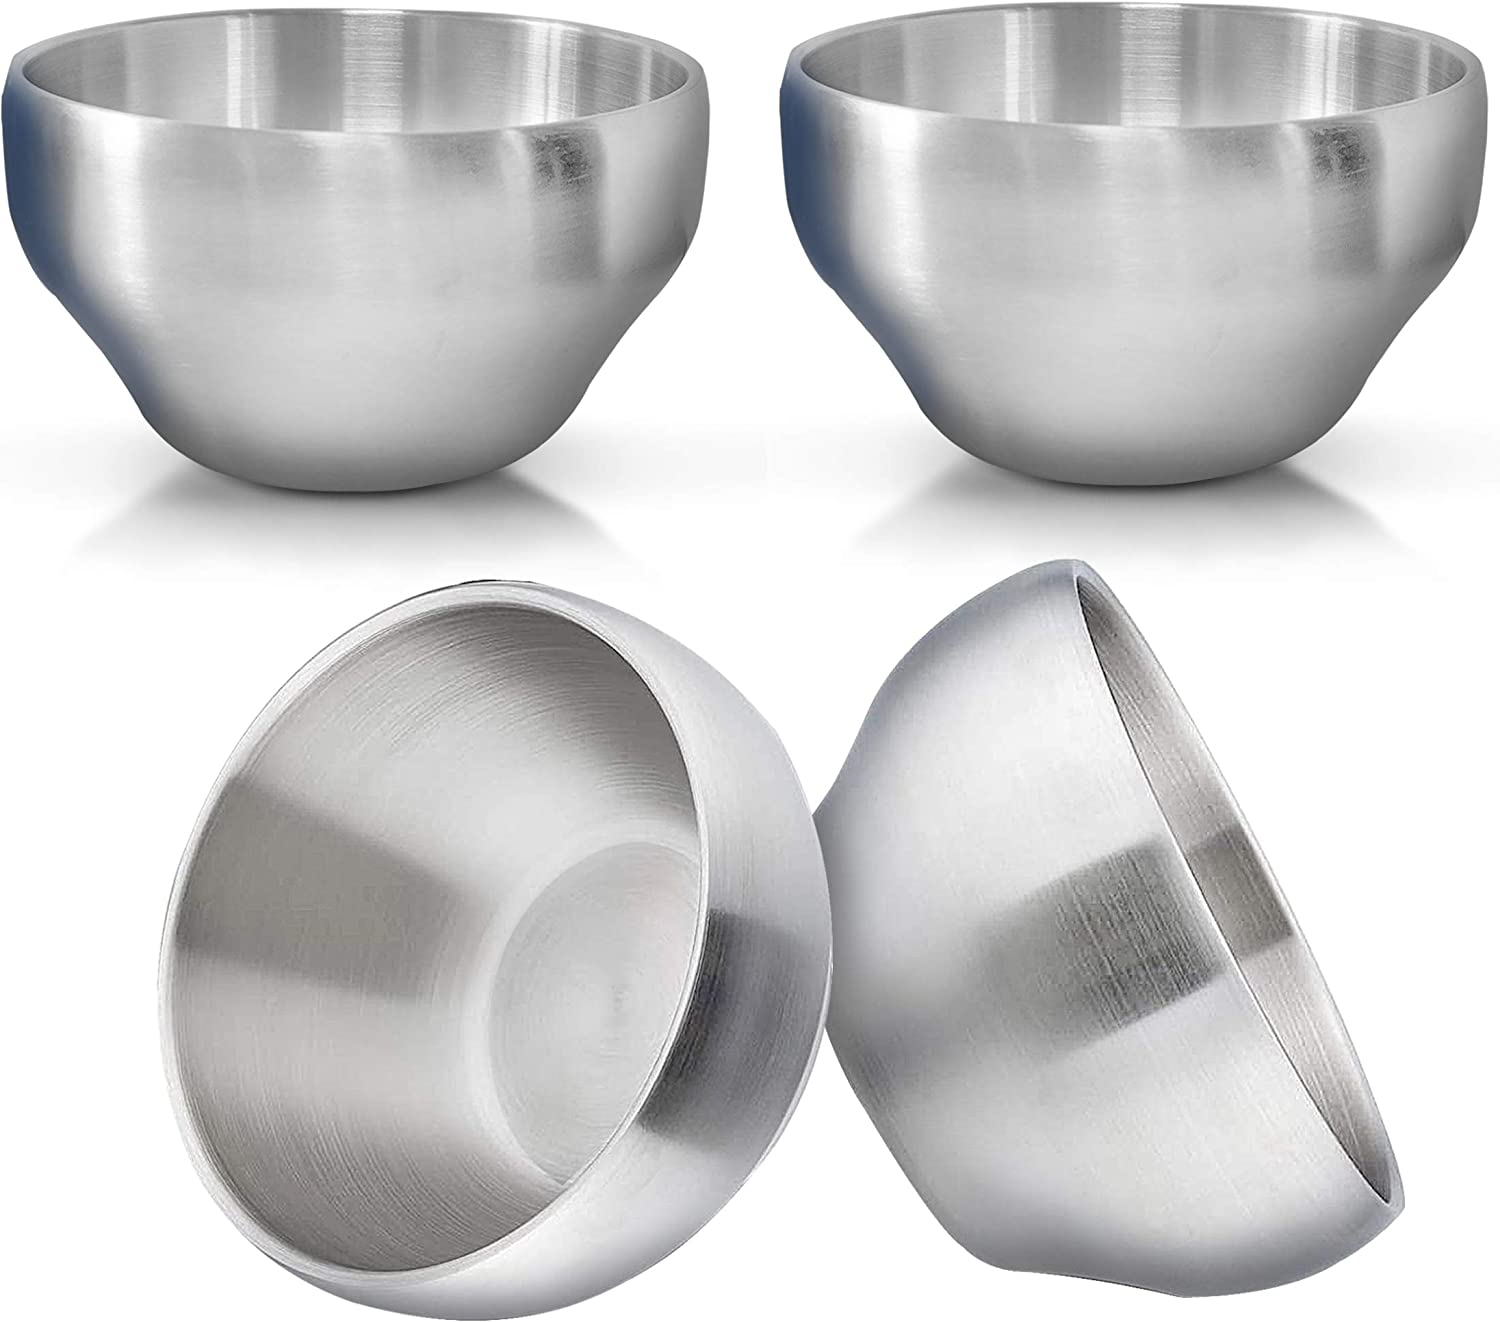 Heavy Duty Heat Insulated Brushed Stainless Steel Serving Bowls, Multipurpose, 4 Pack, LARGE